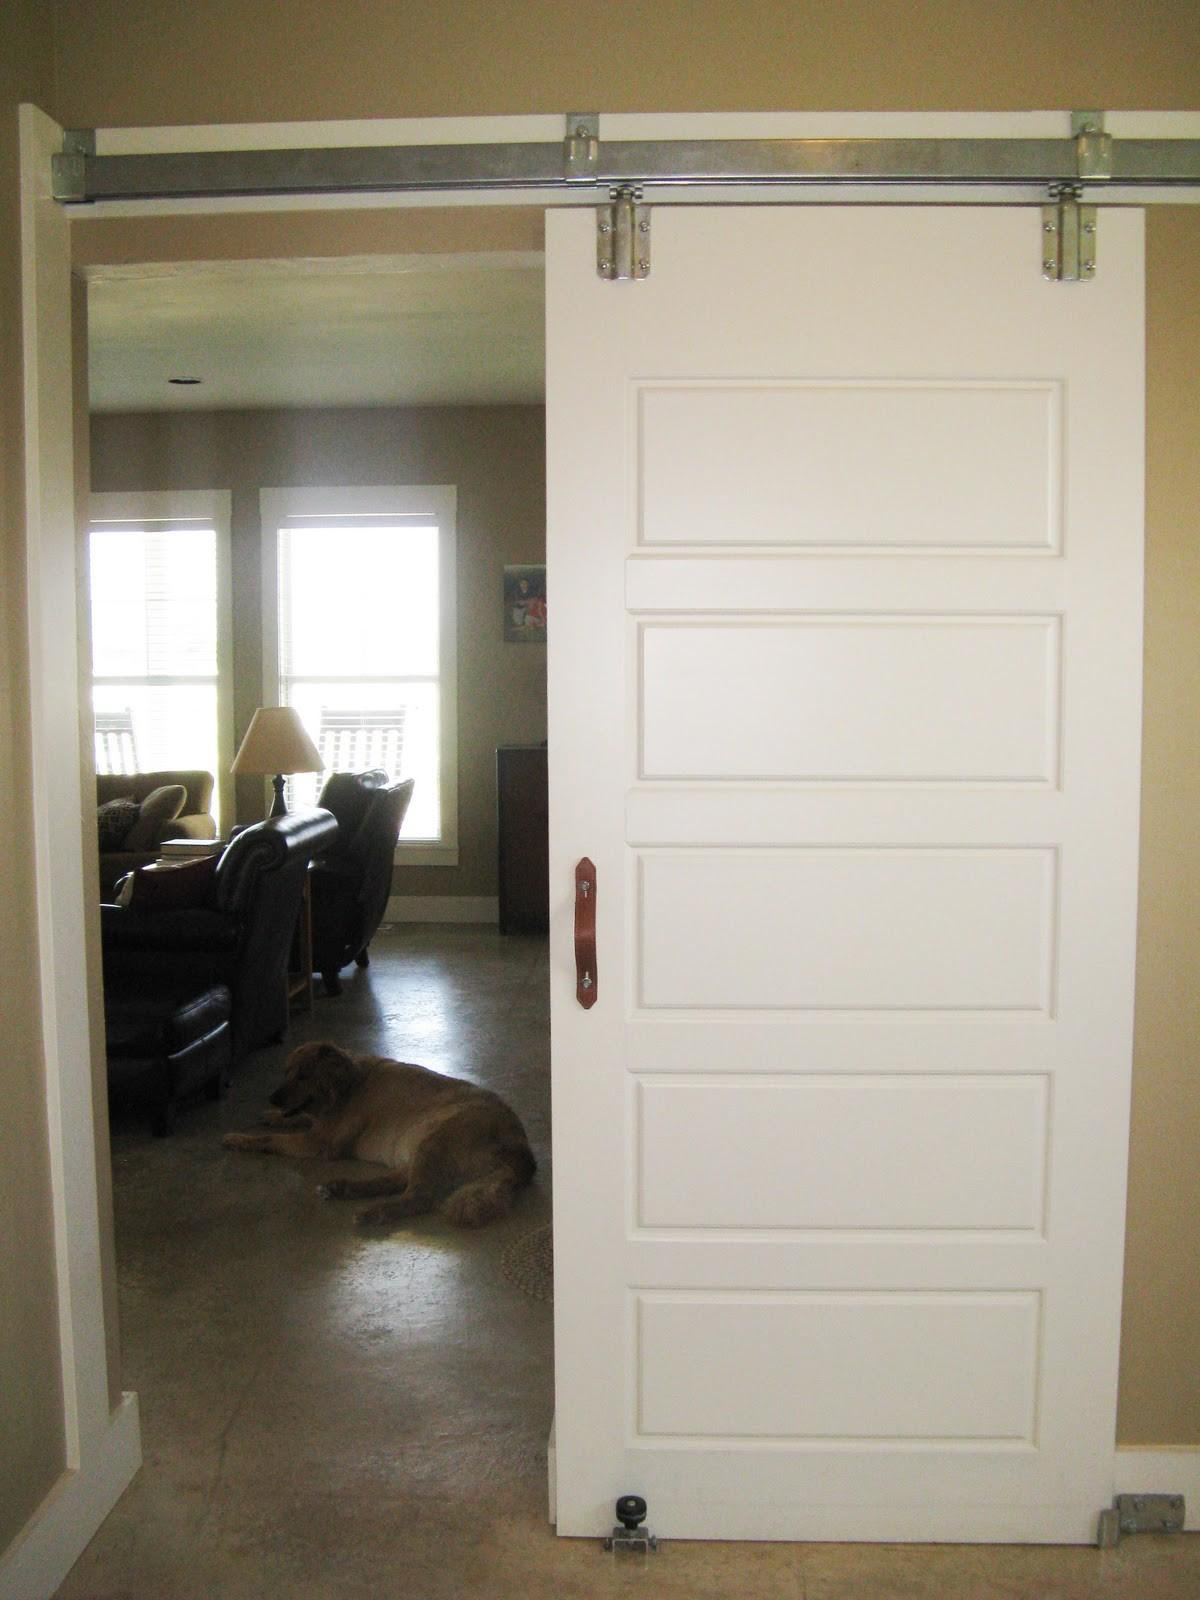 Favorite Farmhouse Feature Interior Barn Doors